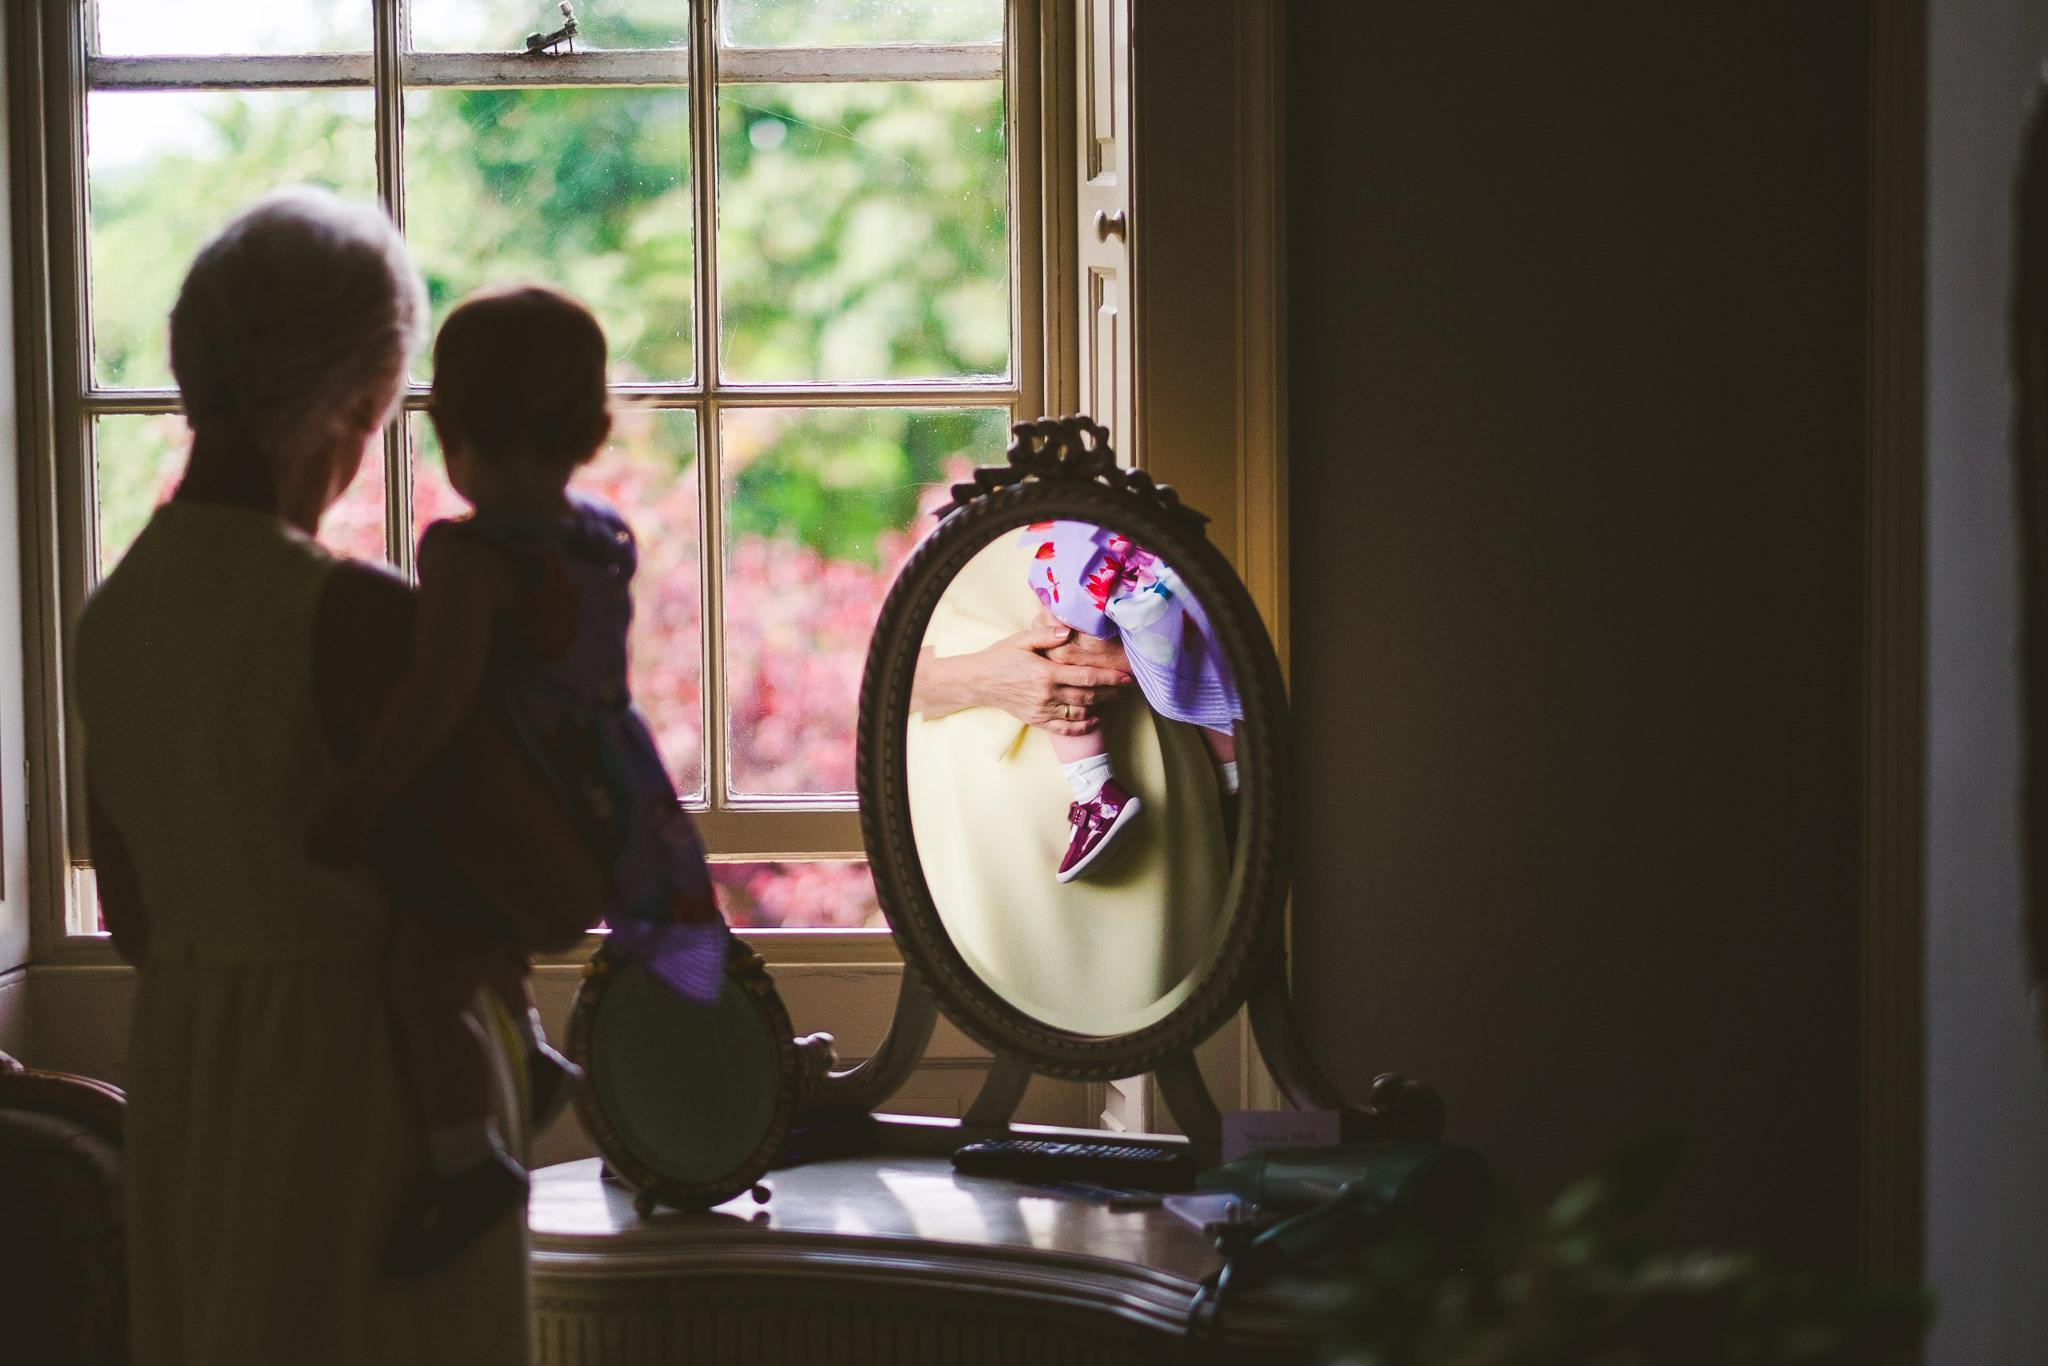 Mother of the bride holds the bride's daughter while looking out of the window